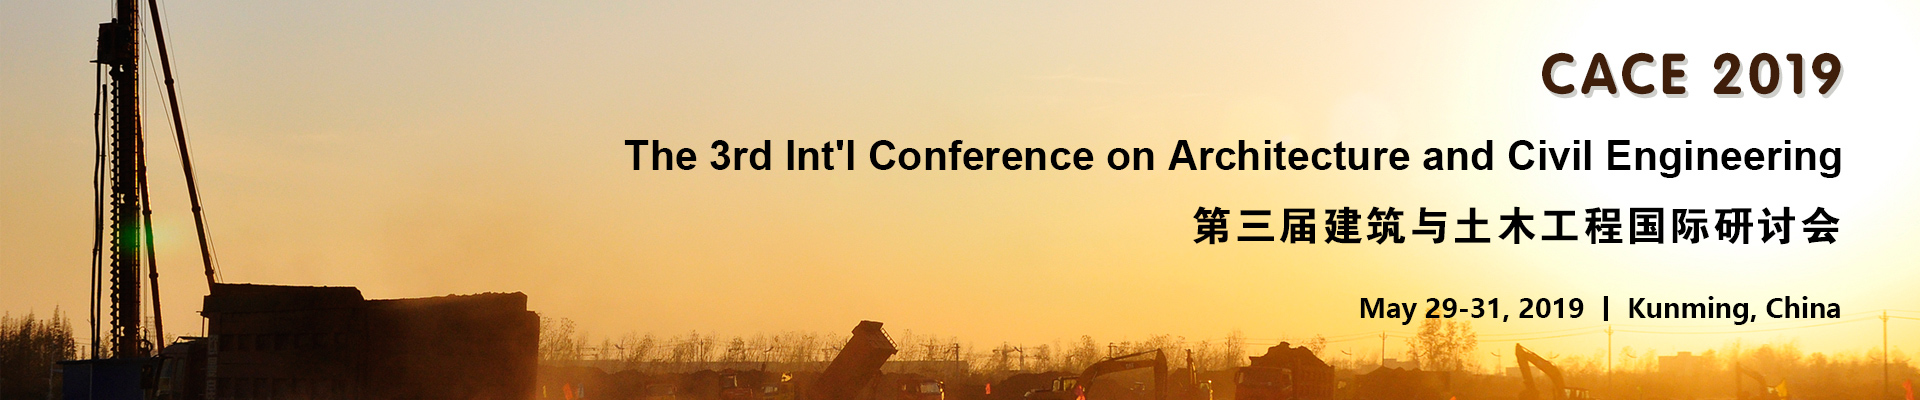 The 3rd Int'l Conference on Architecture and Civil Engineering (CACE 2019), Kunming, Yunnan, China